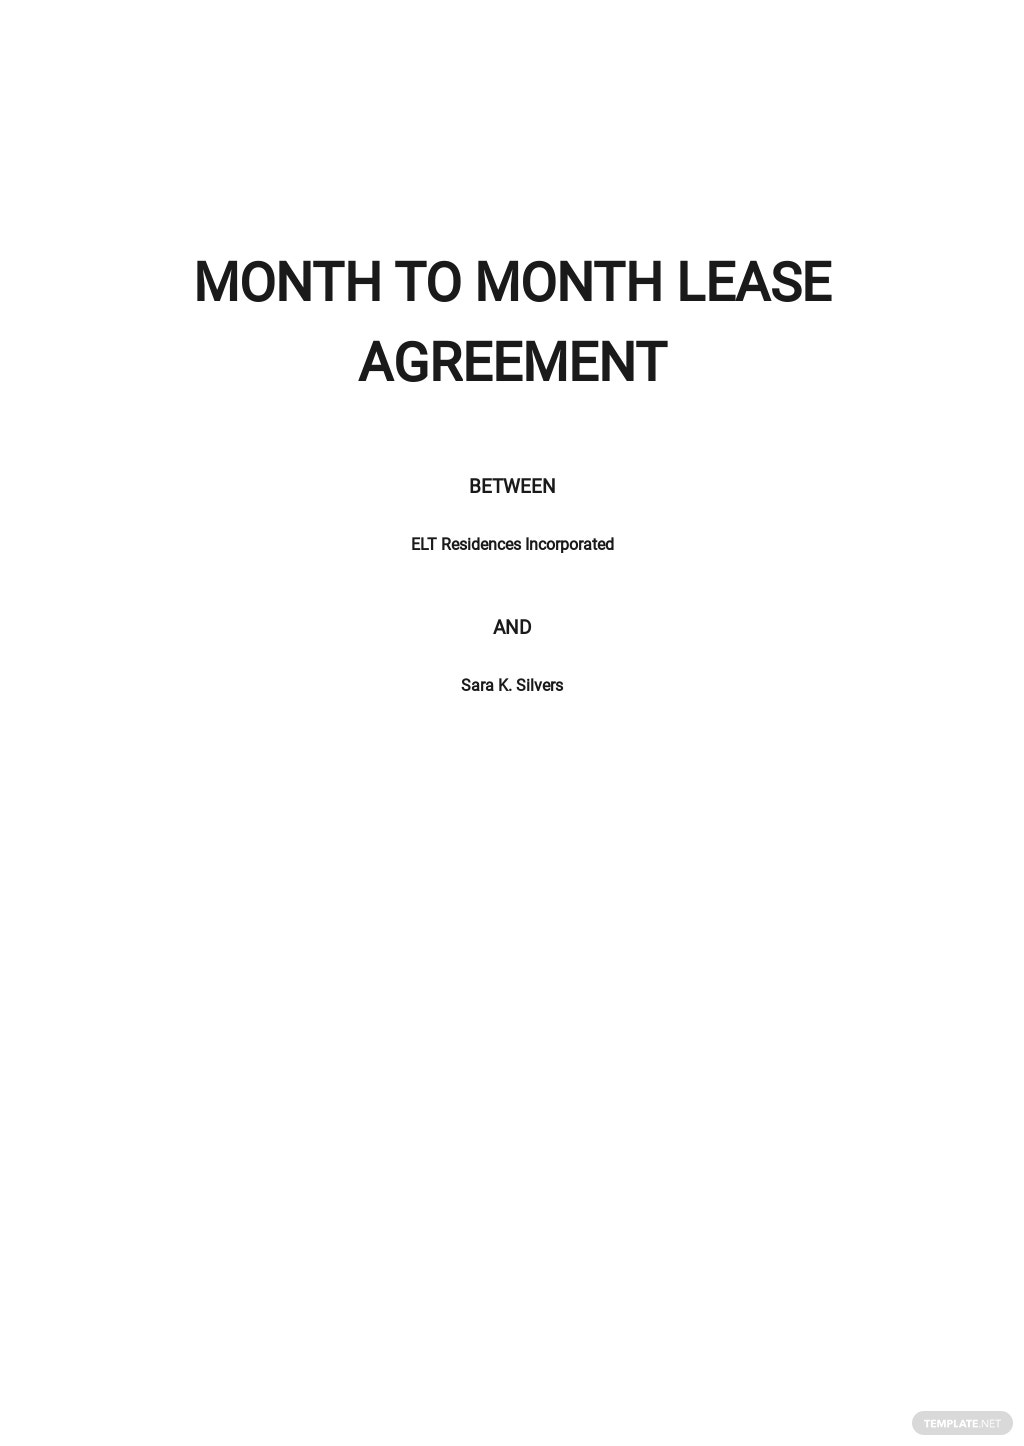 Month to Month Lease Agreement Template.jpe